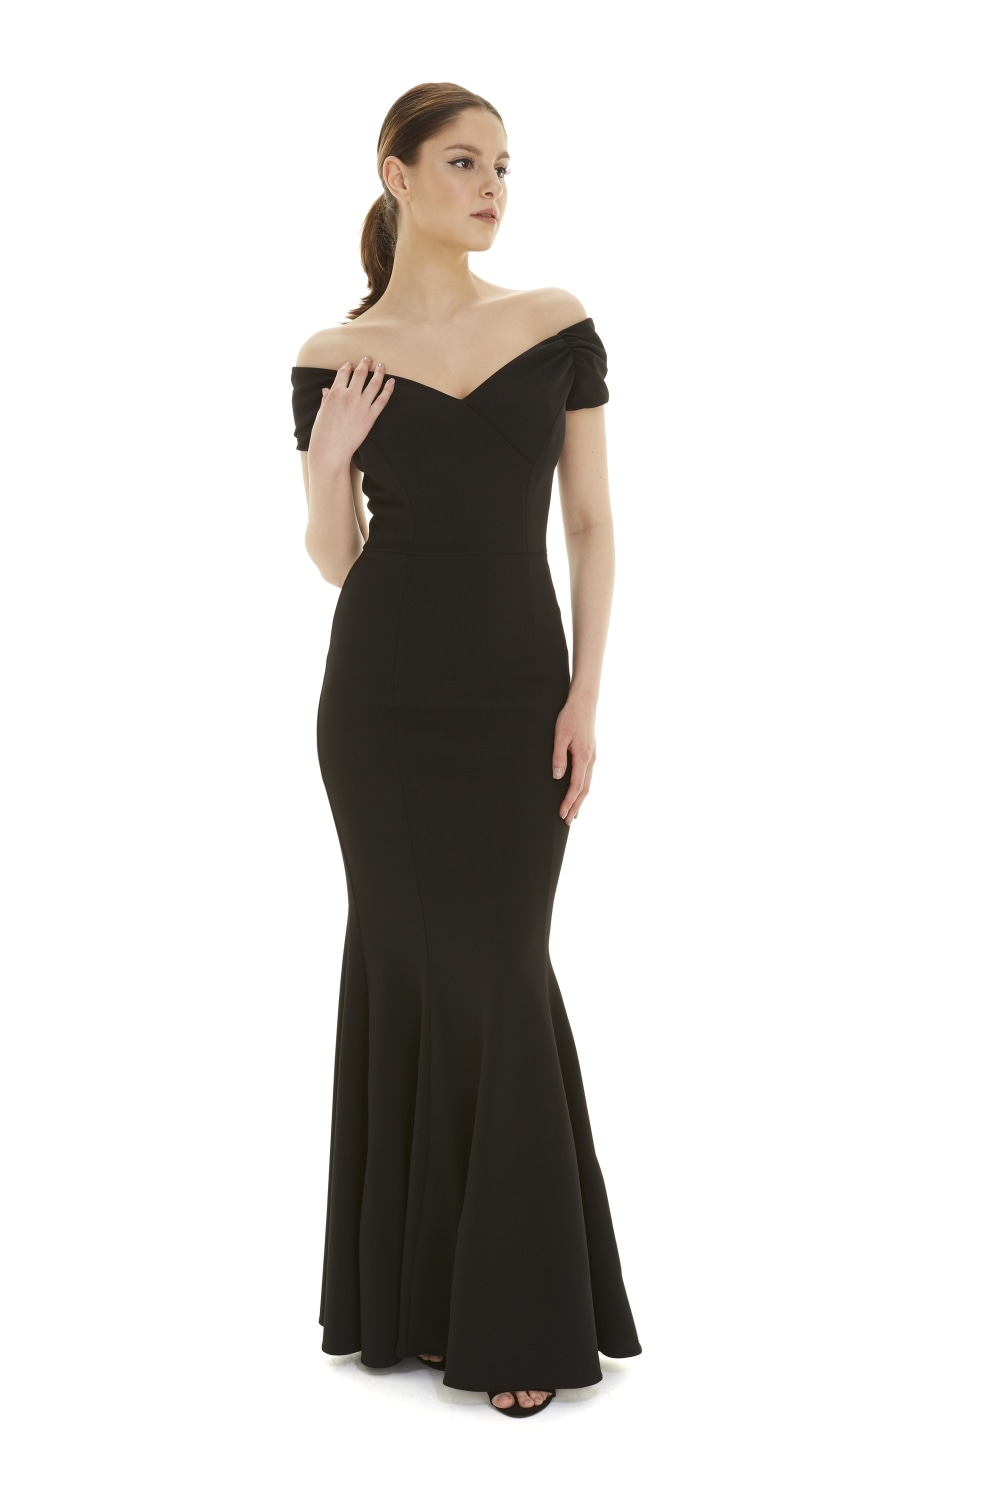 Fatale Fishtail Gown from The Pretty Dress Company